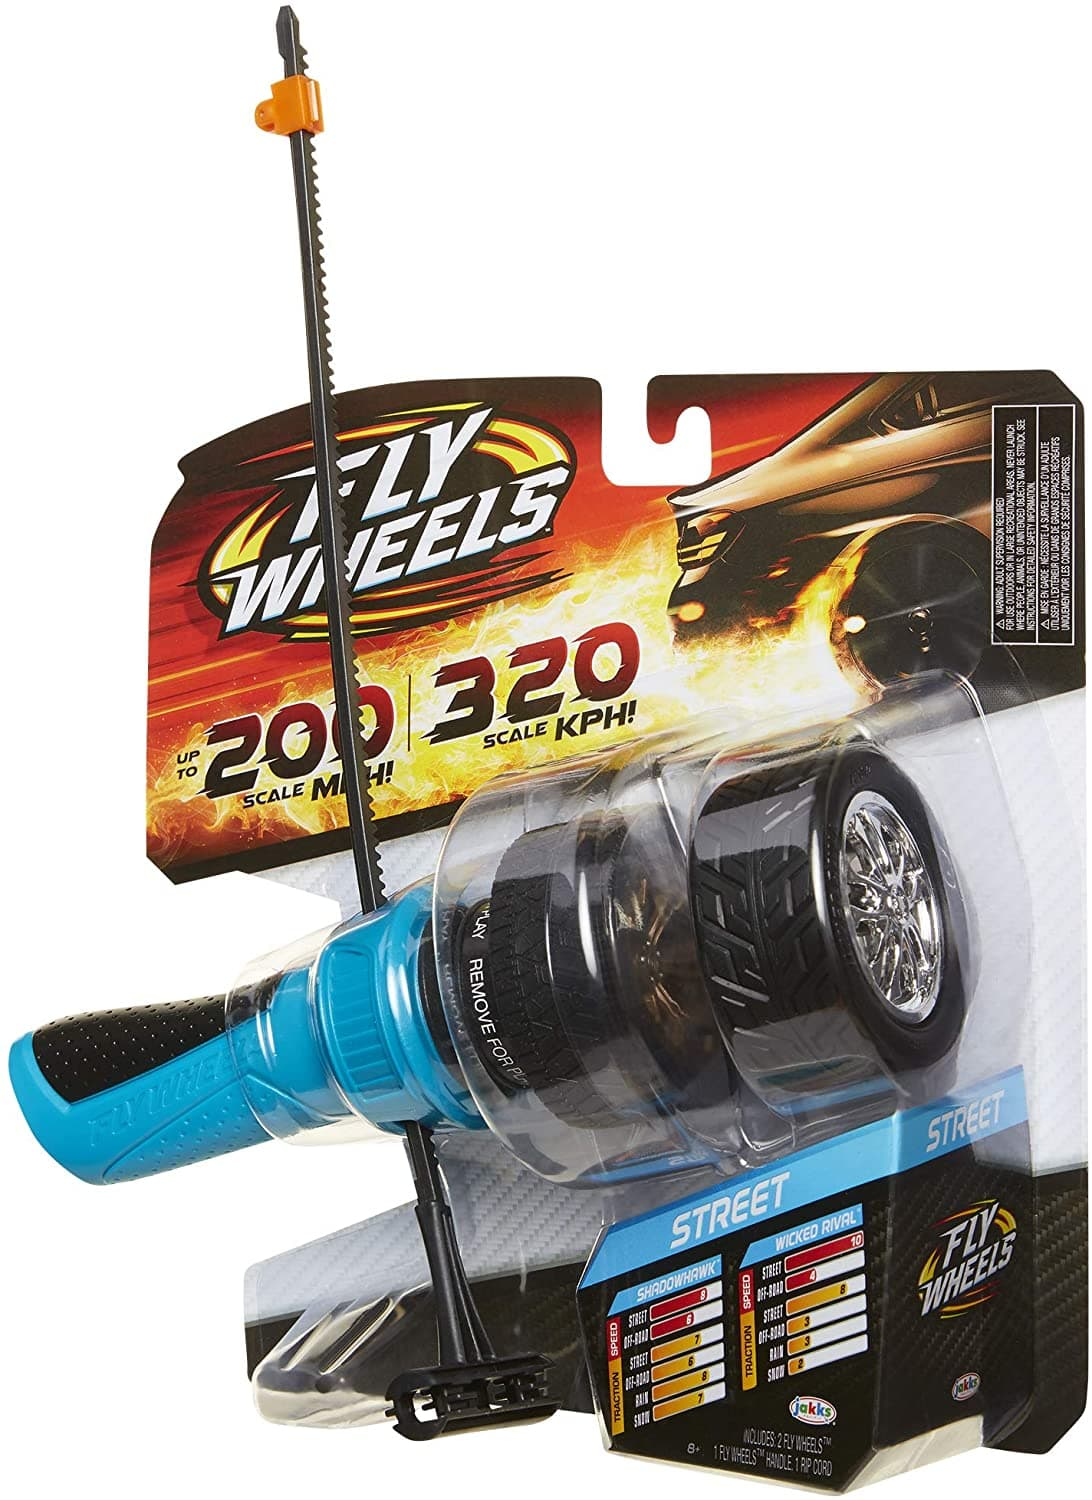 Fly Wheels Launcher + 2 Street Wheels - Rip it up to 200 Scale MPH $3.14